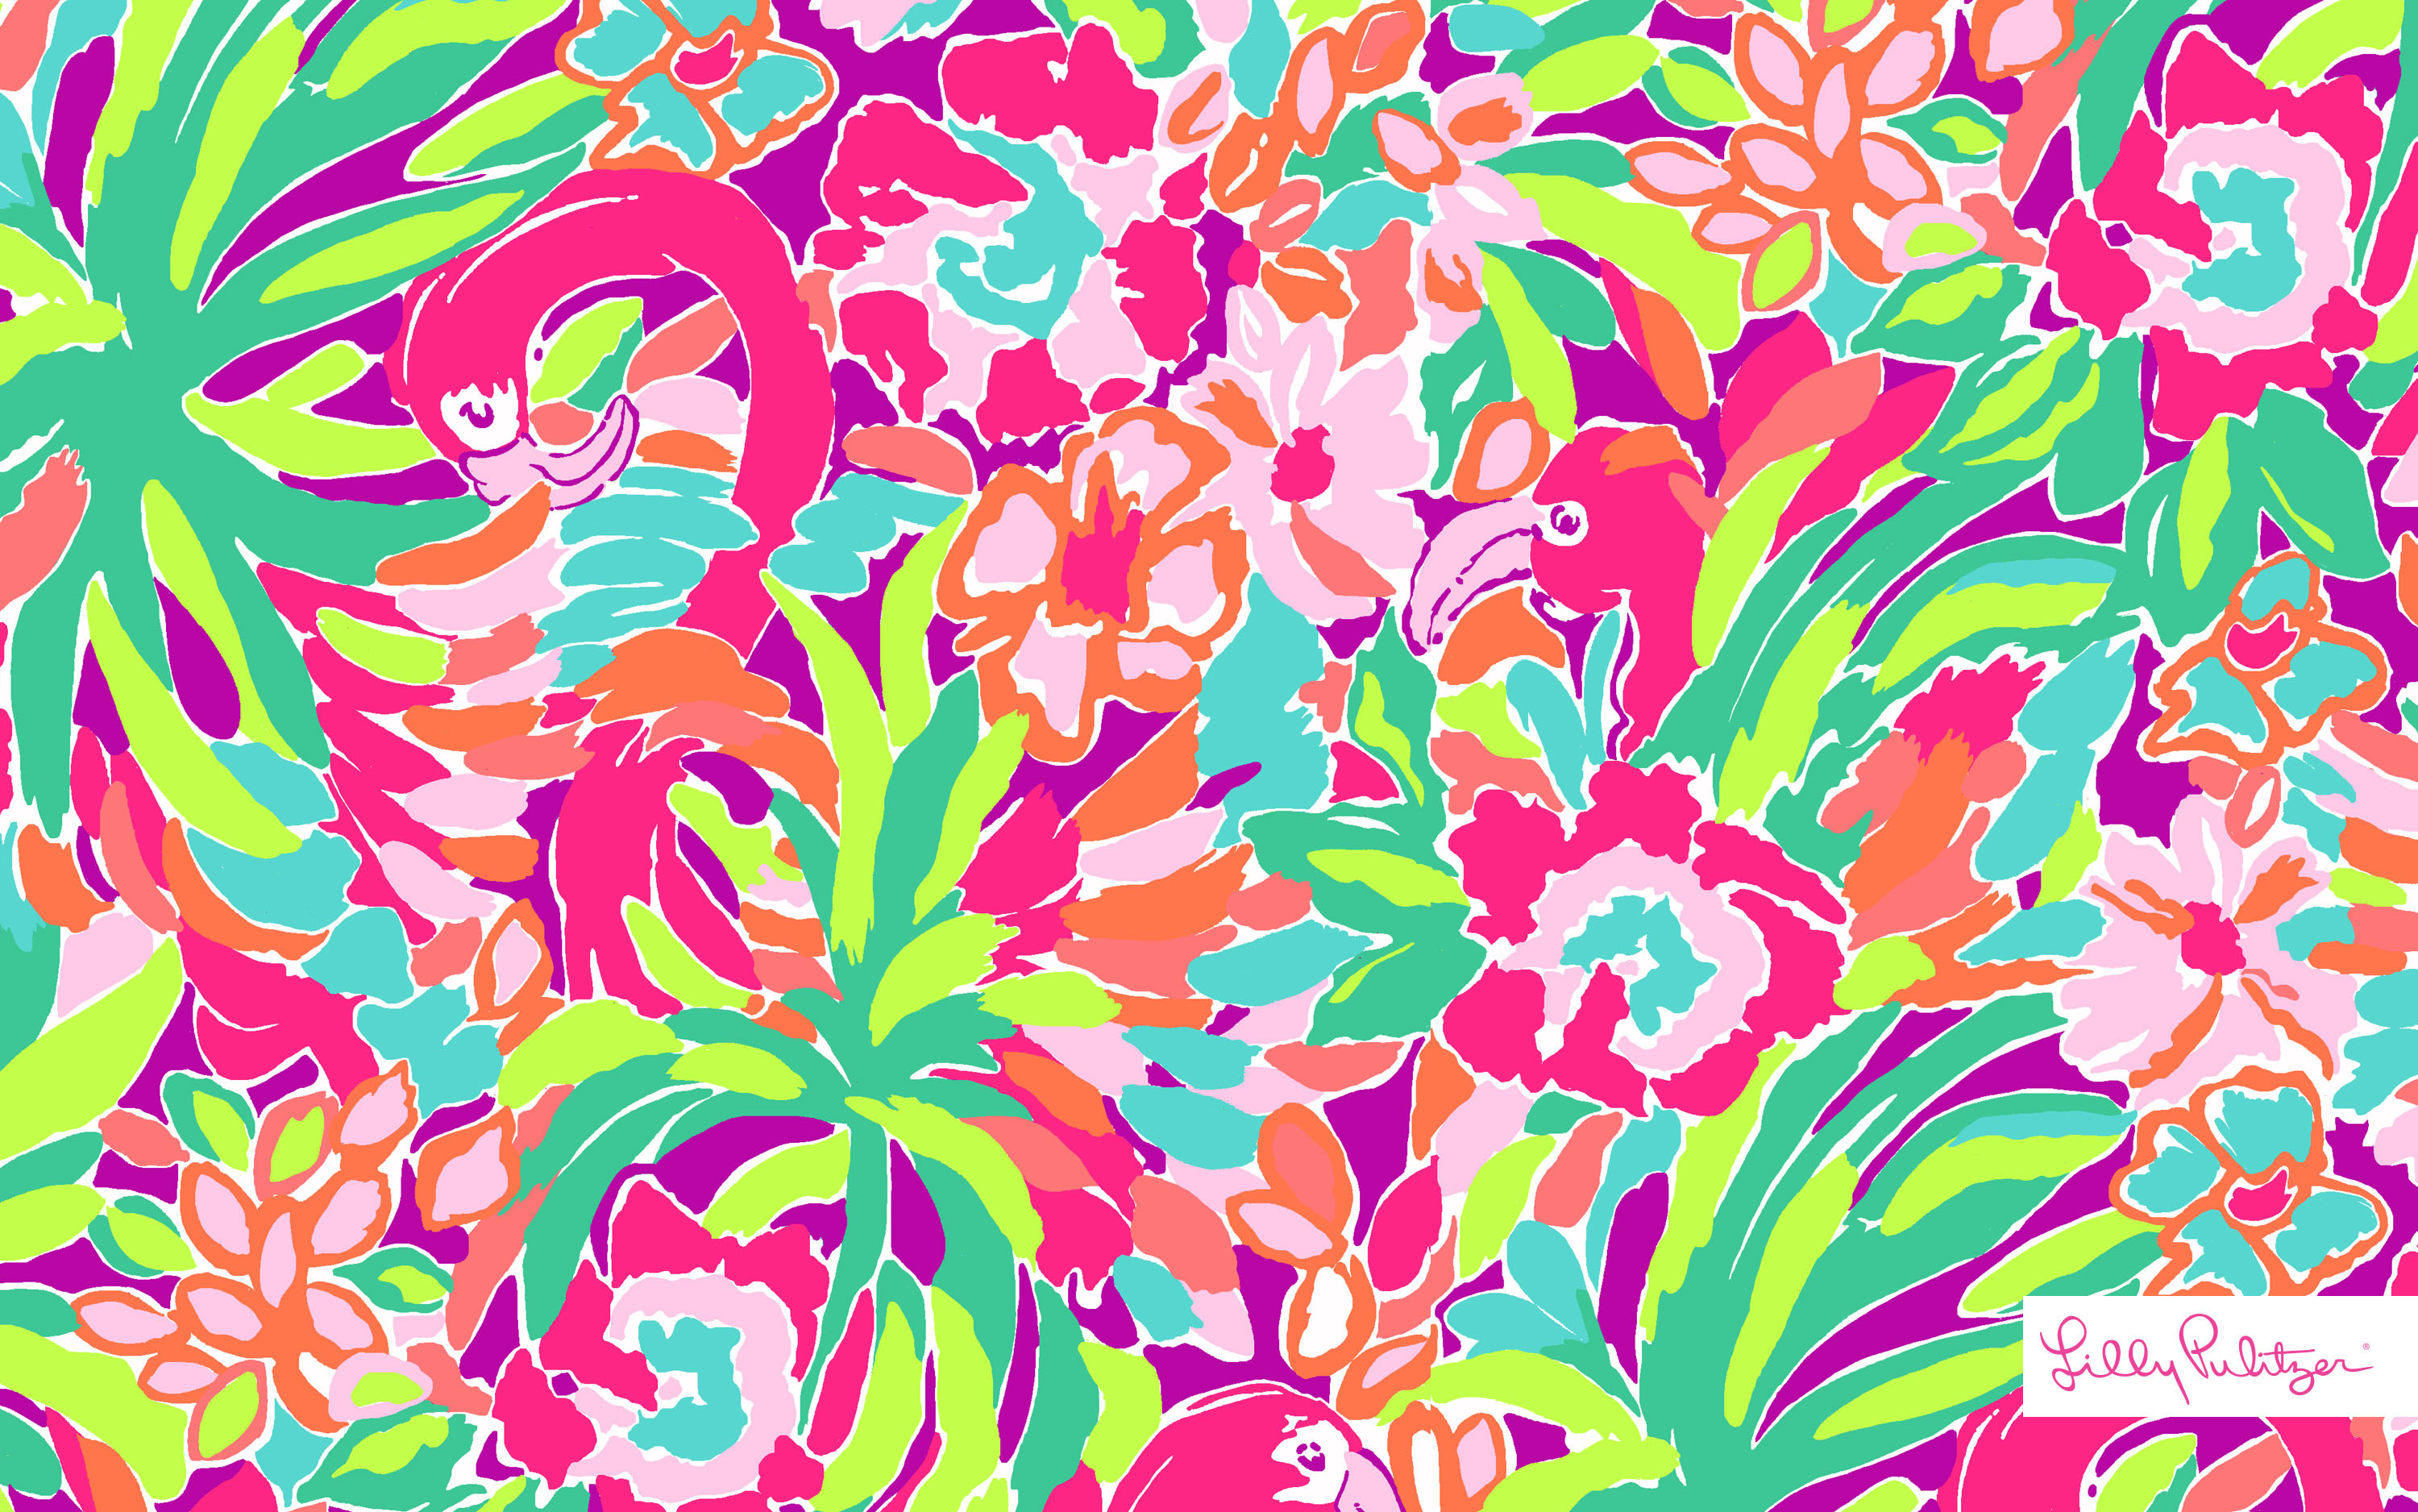 lilly pulitzer iphone wallpaper | Lilly Pulitzer Mai Tai iphone wallpaper |  Wallpaper | Pinterest | Lilly pulitzer iphone wallpaper